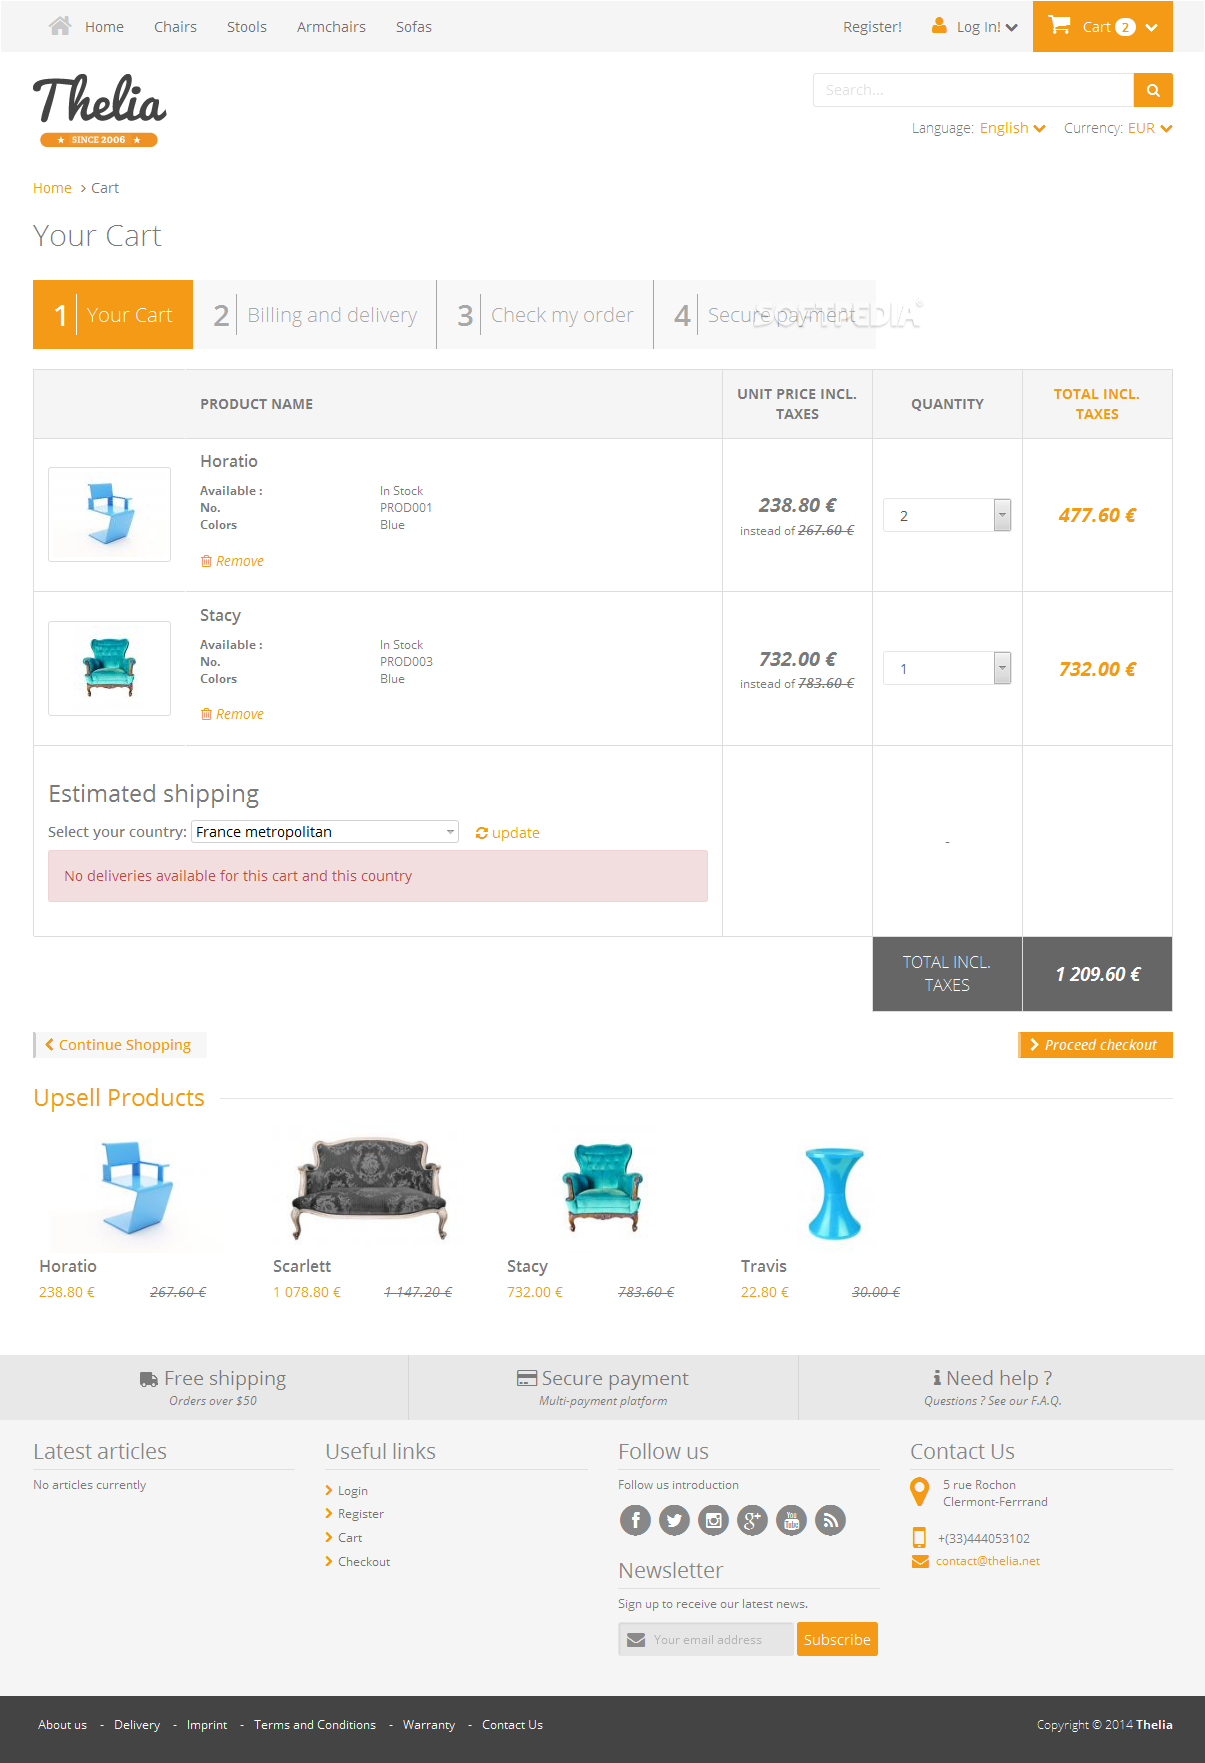 Thelia - A shopping cart widget is included to help users manage their shopping lists and checkout process